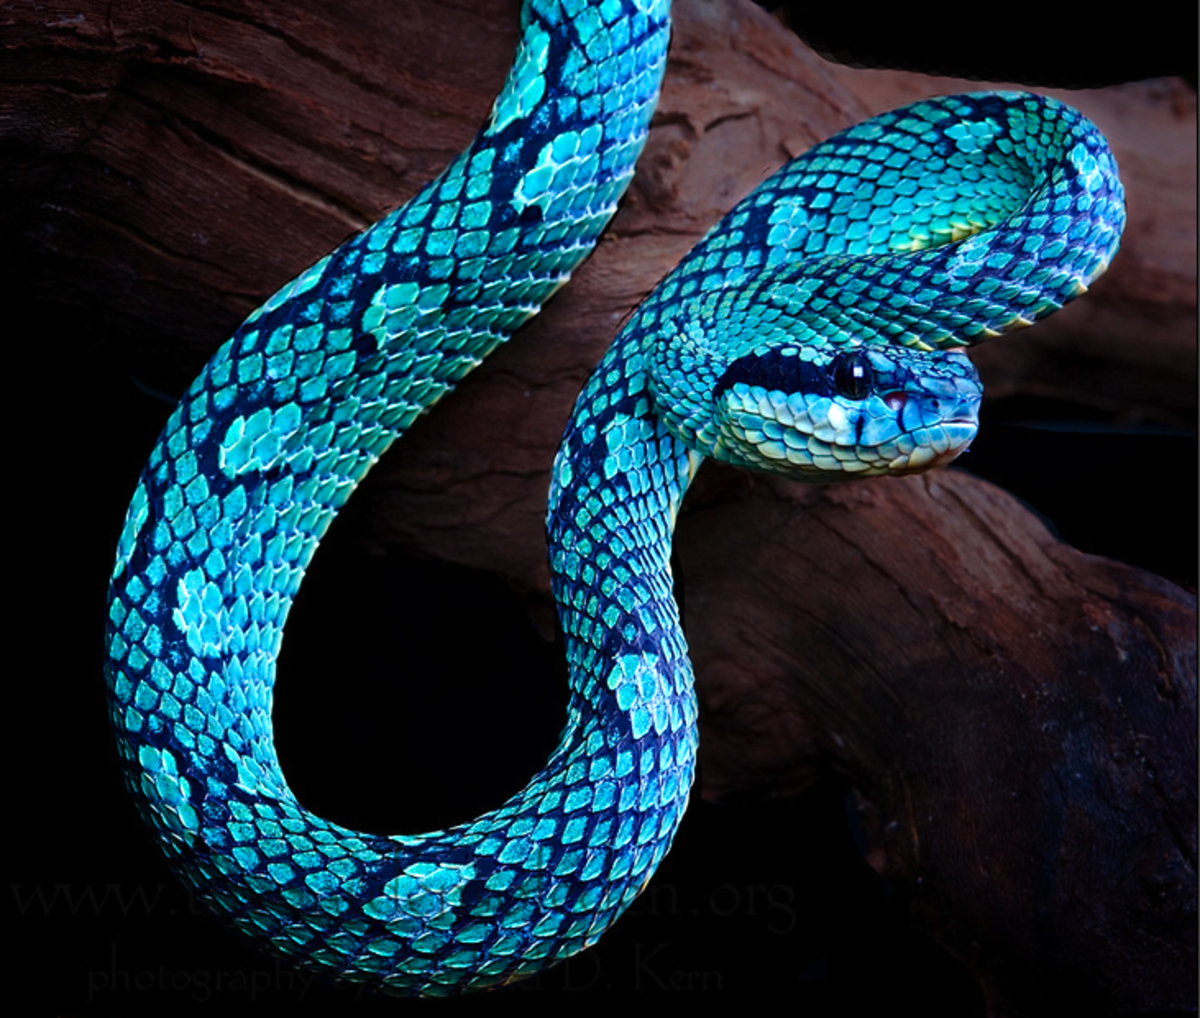 Normal Trimeresurus trigonocephalus